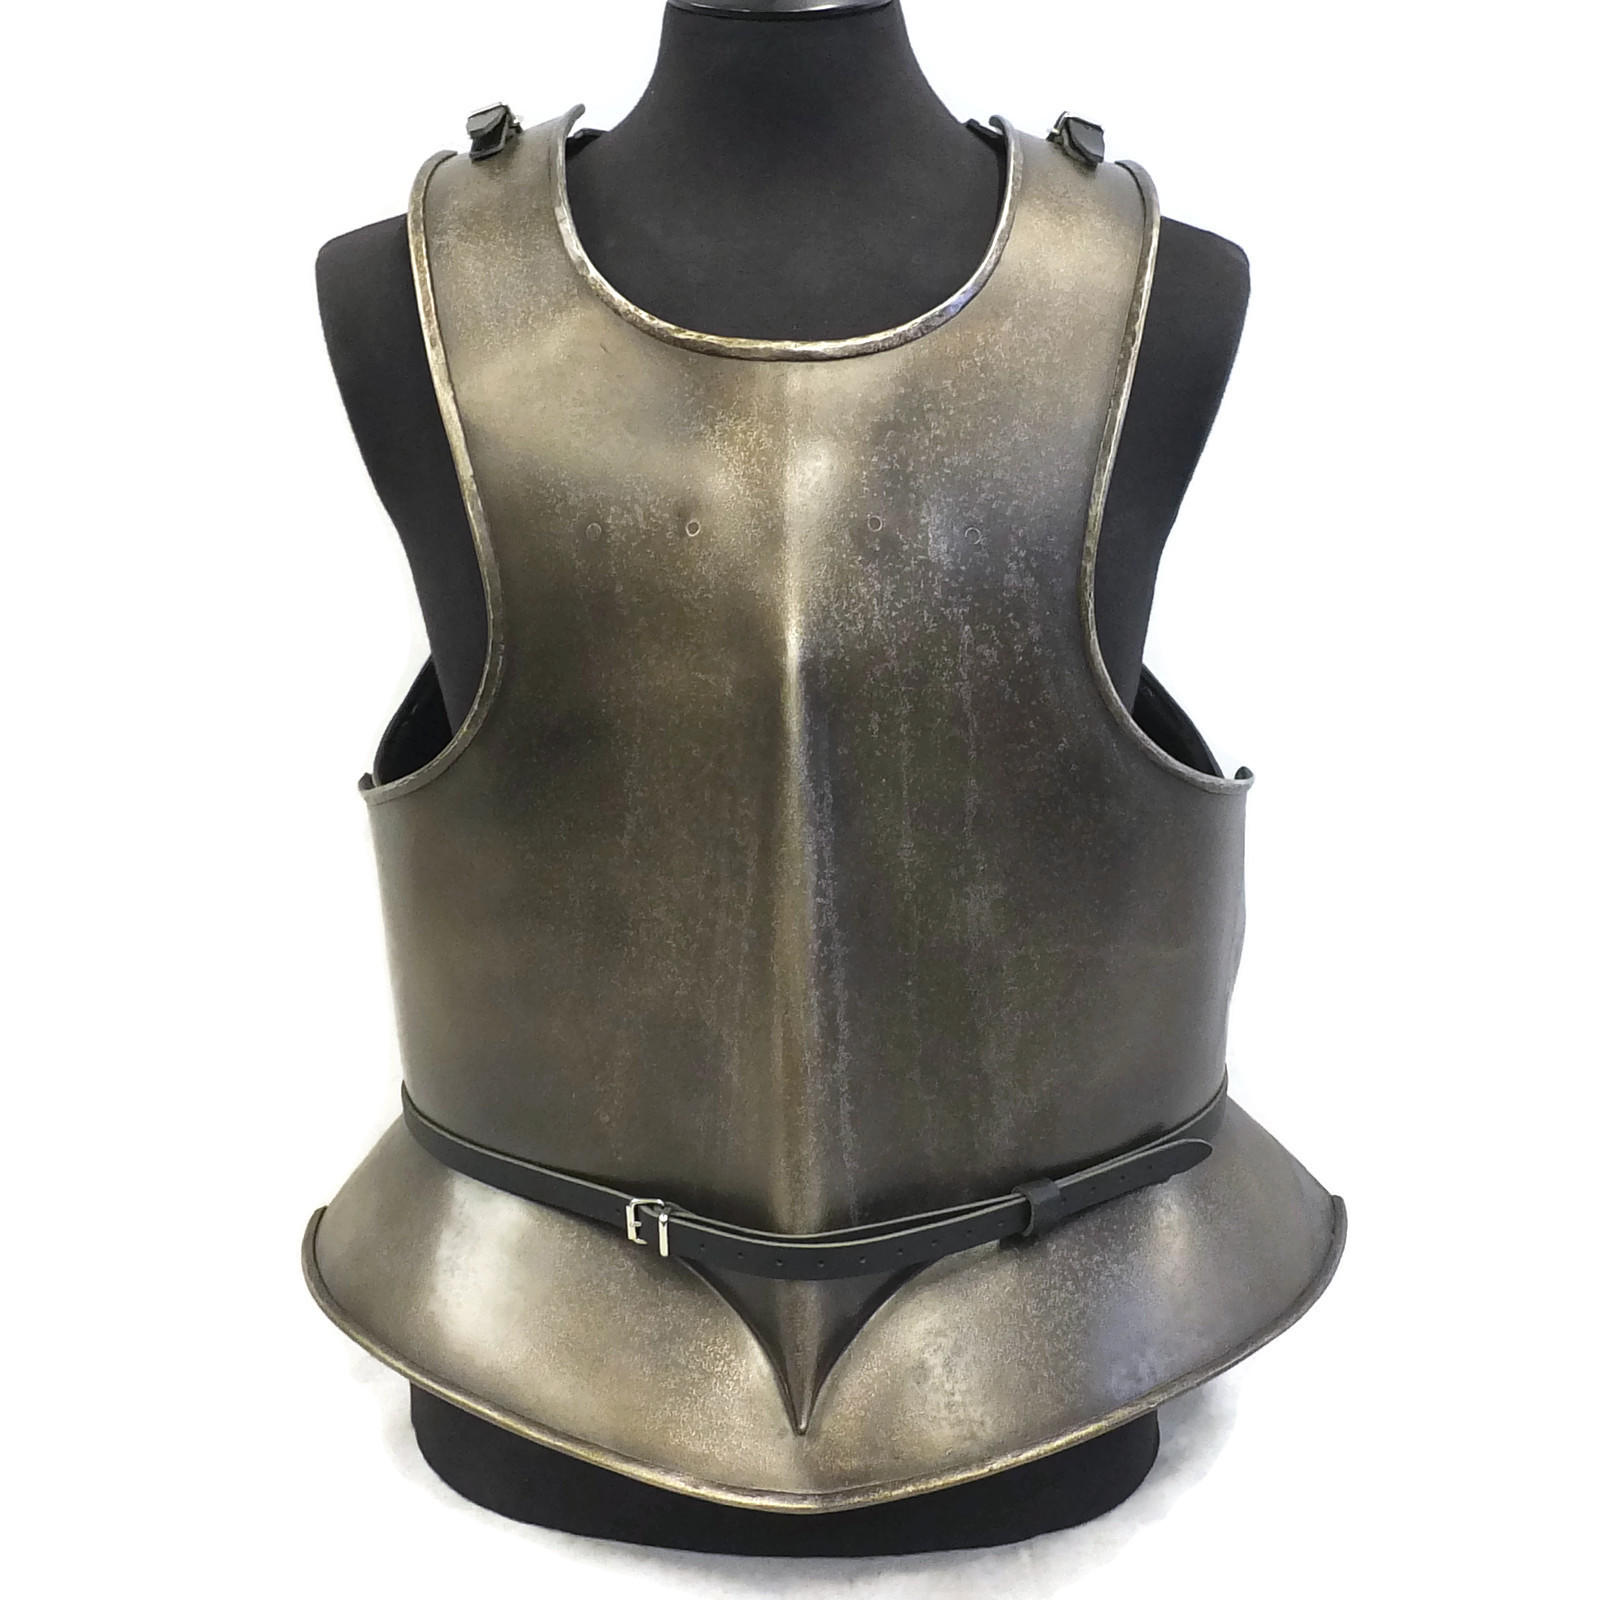 XL munitions larp armour